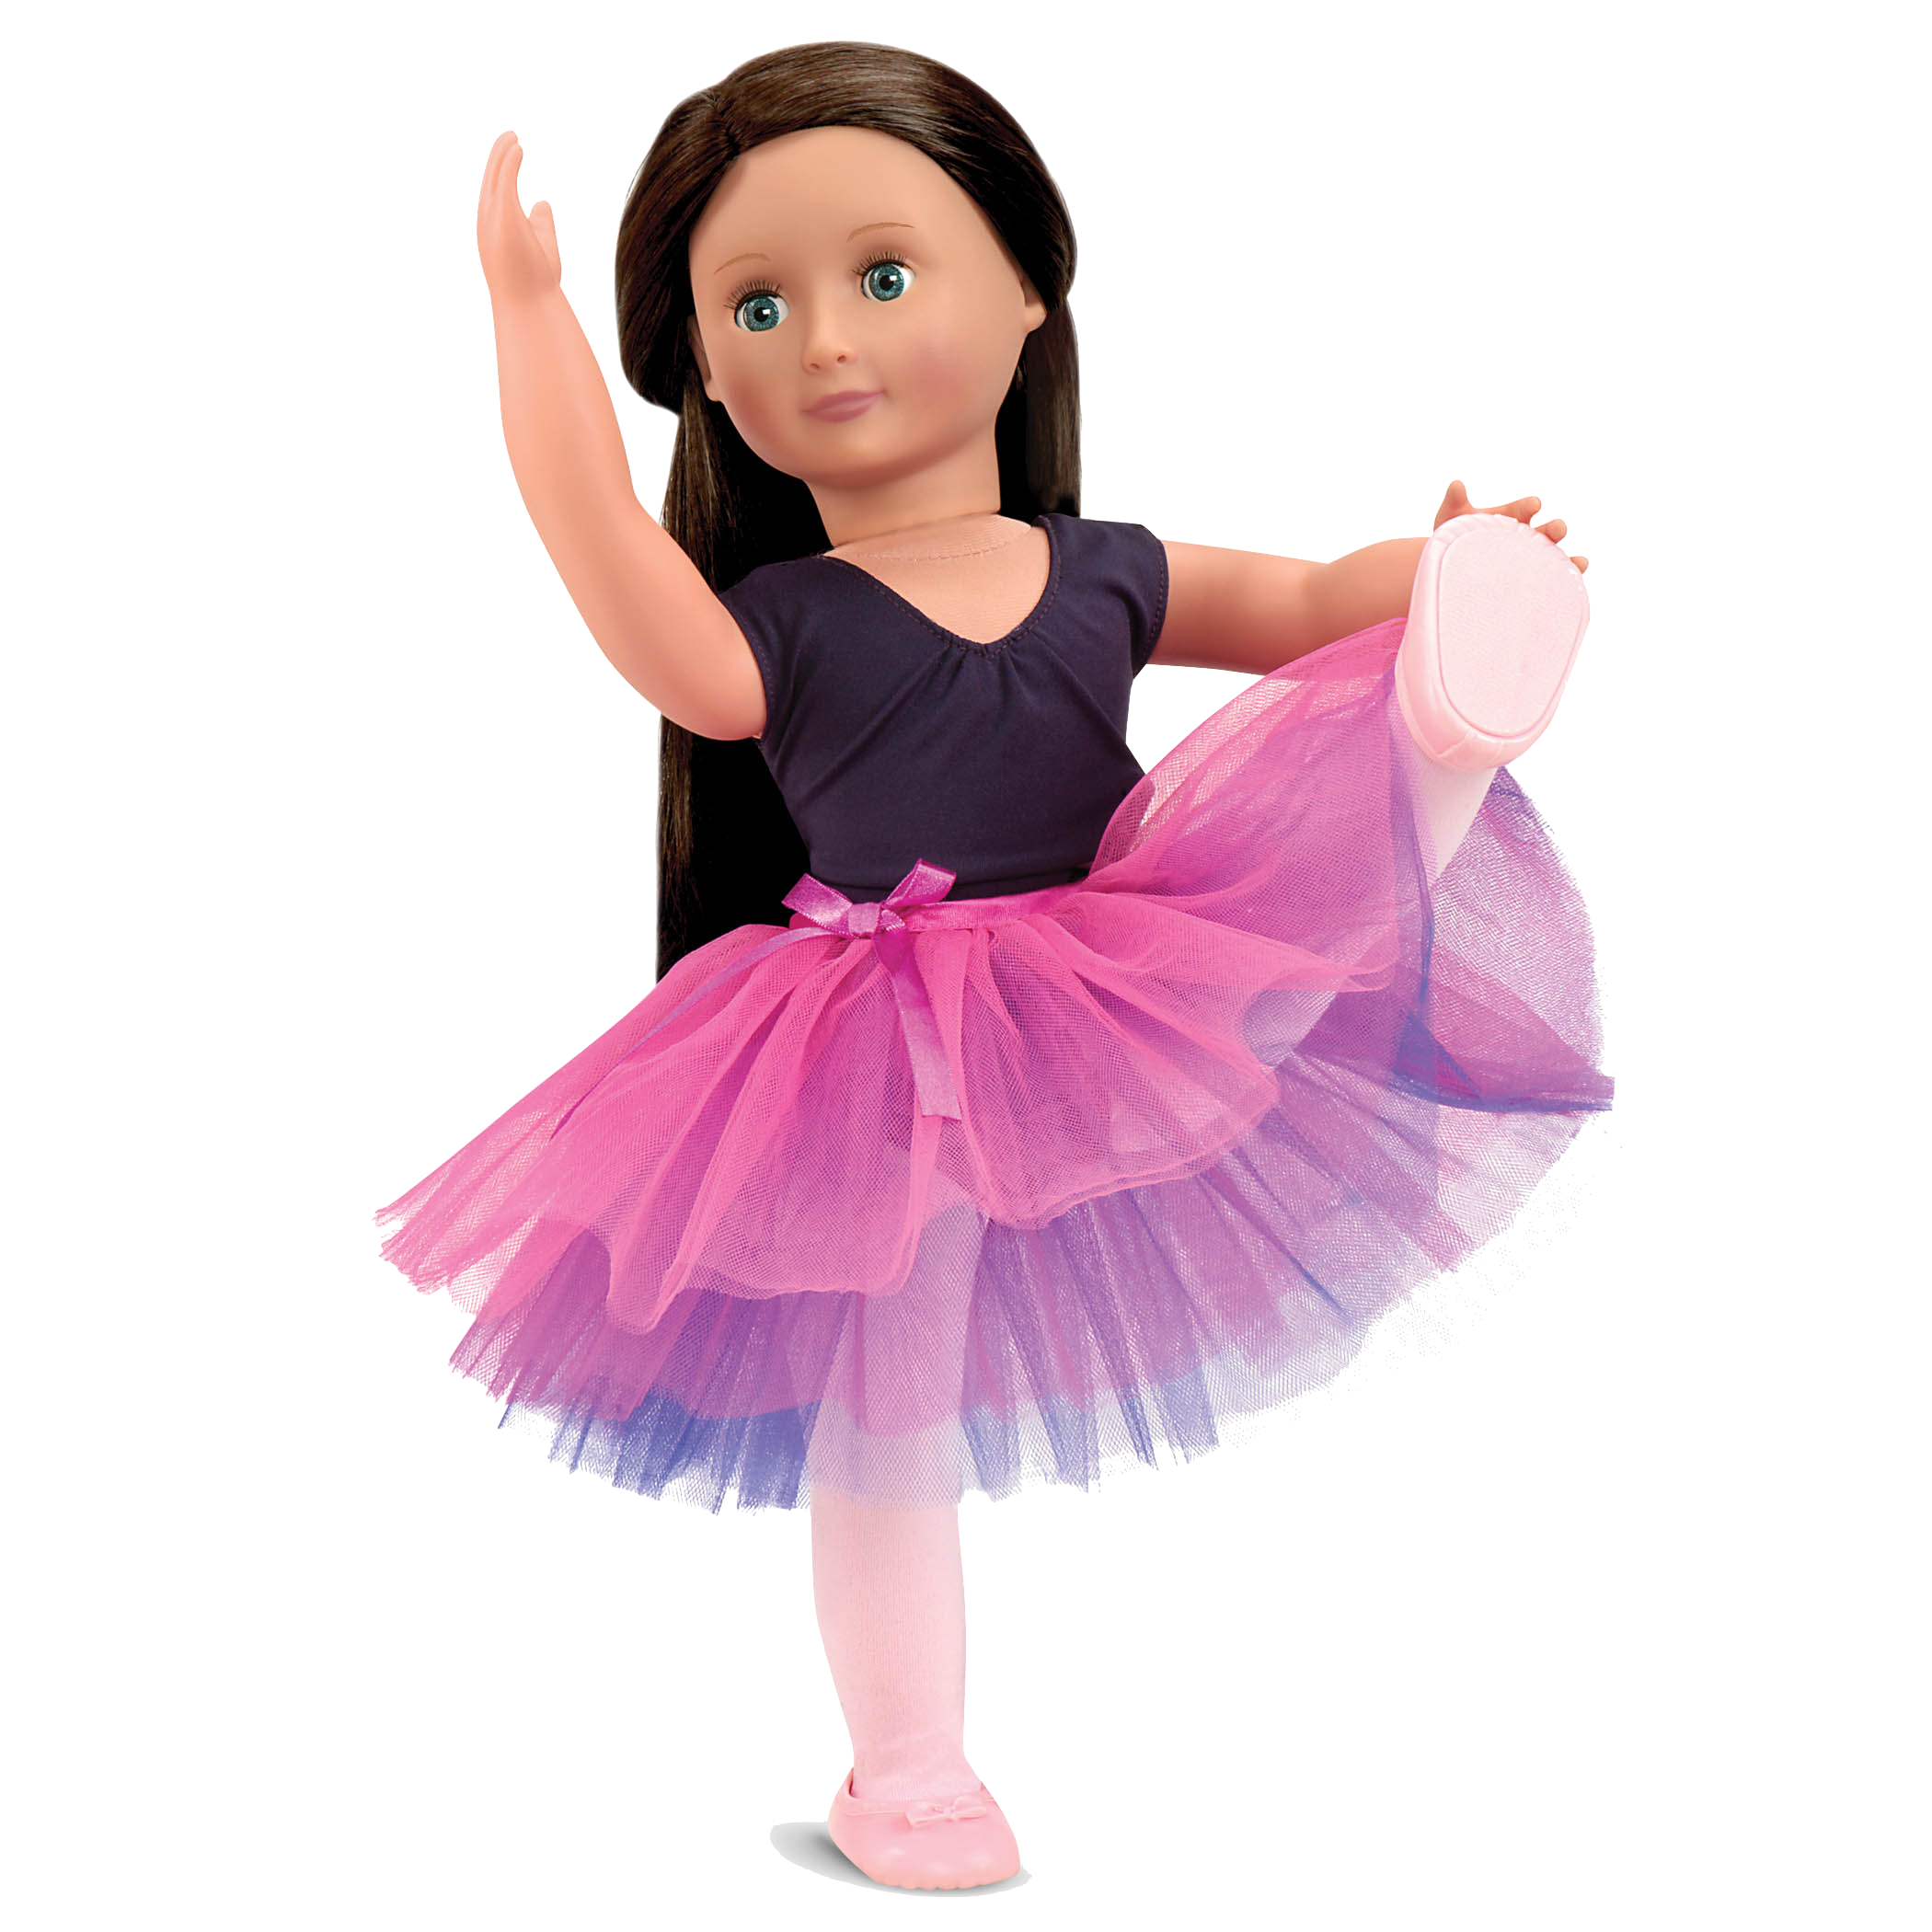 Dance Tulle You Drop ballet outfit Willow wearing